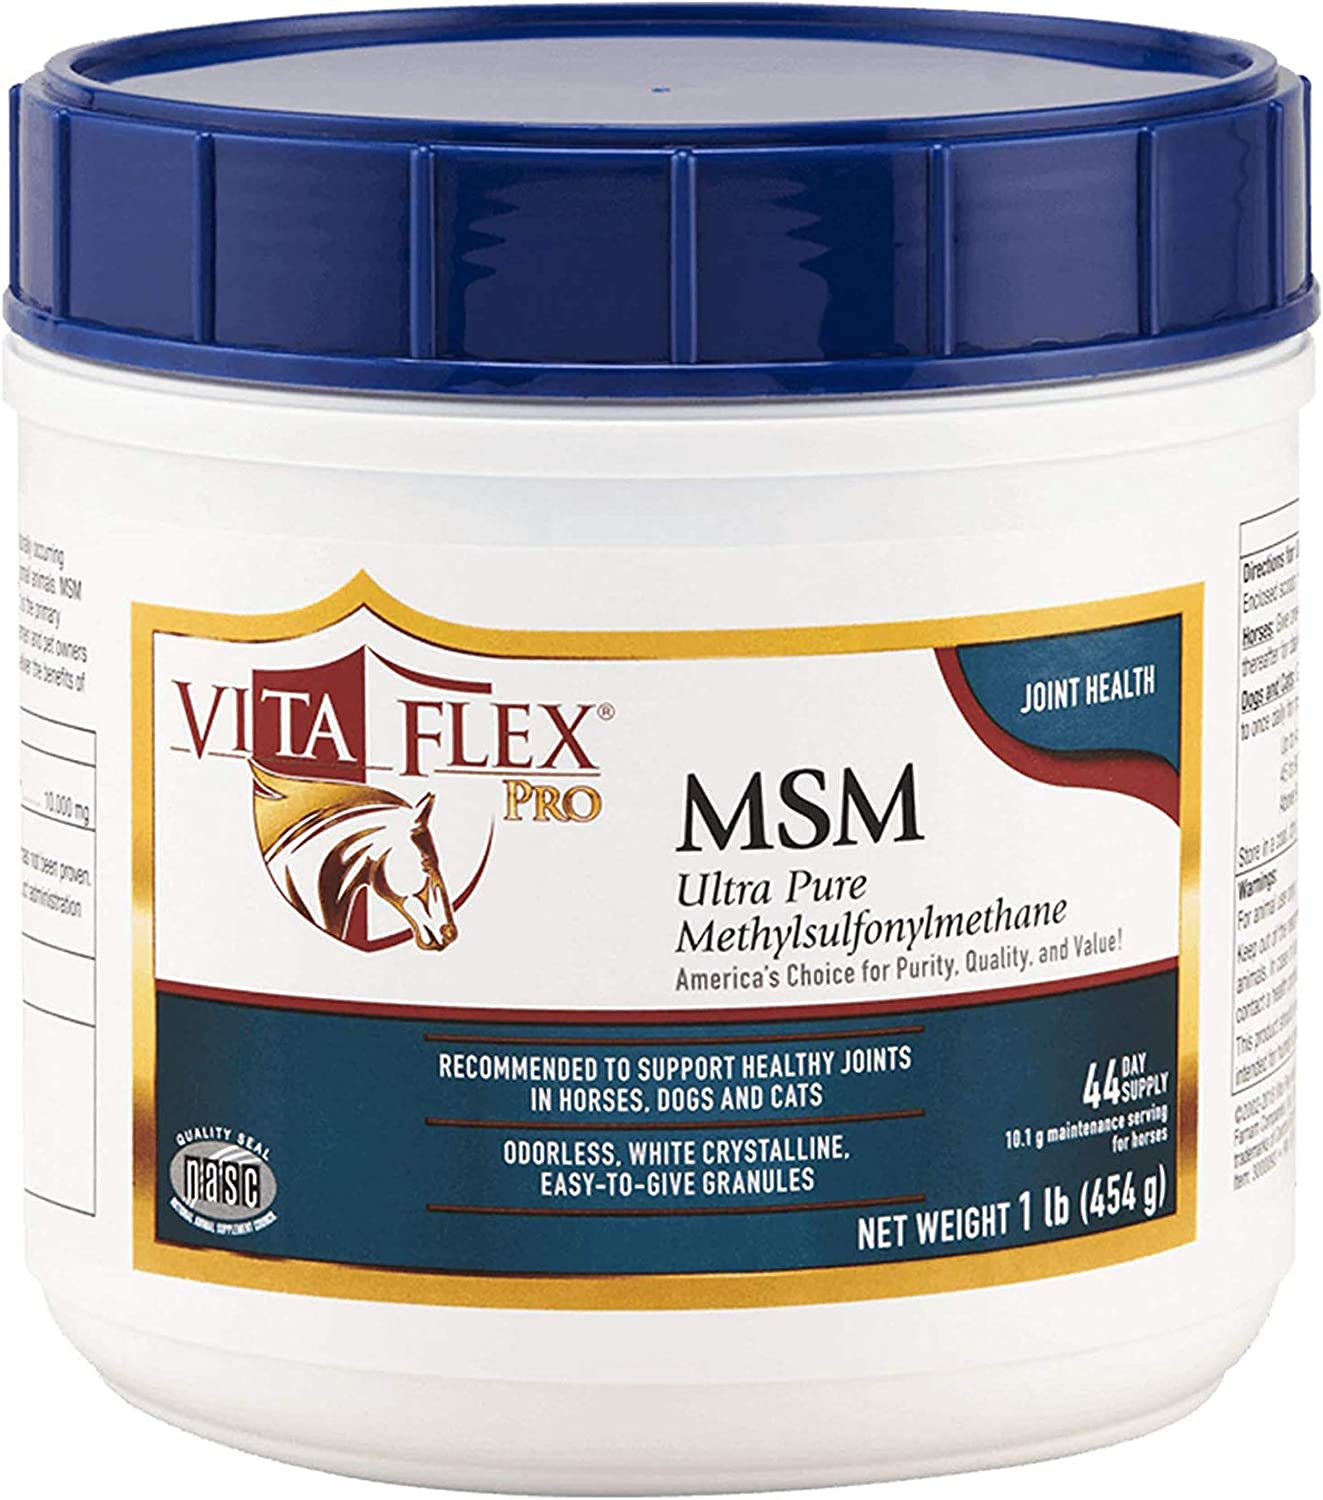 Vita Flex Pro MSM Joint Supplement | Odorless | for Horses, Ponies, Dogs and Cats